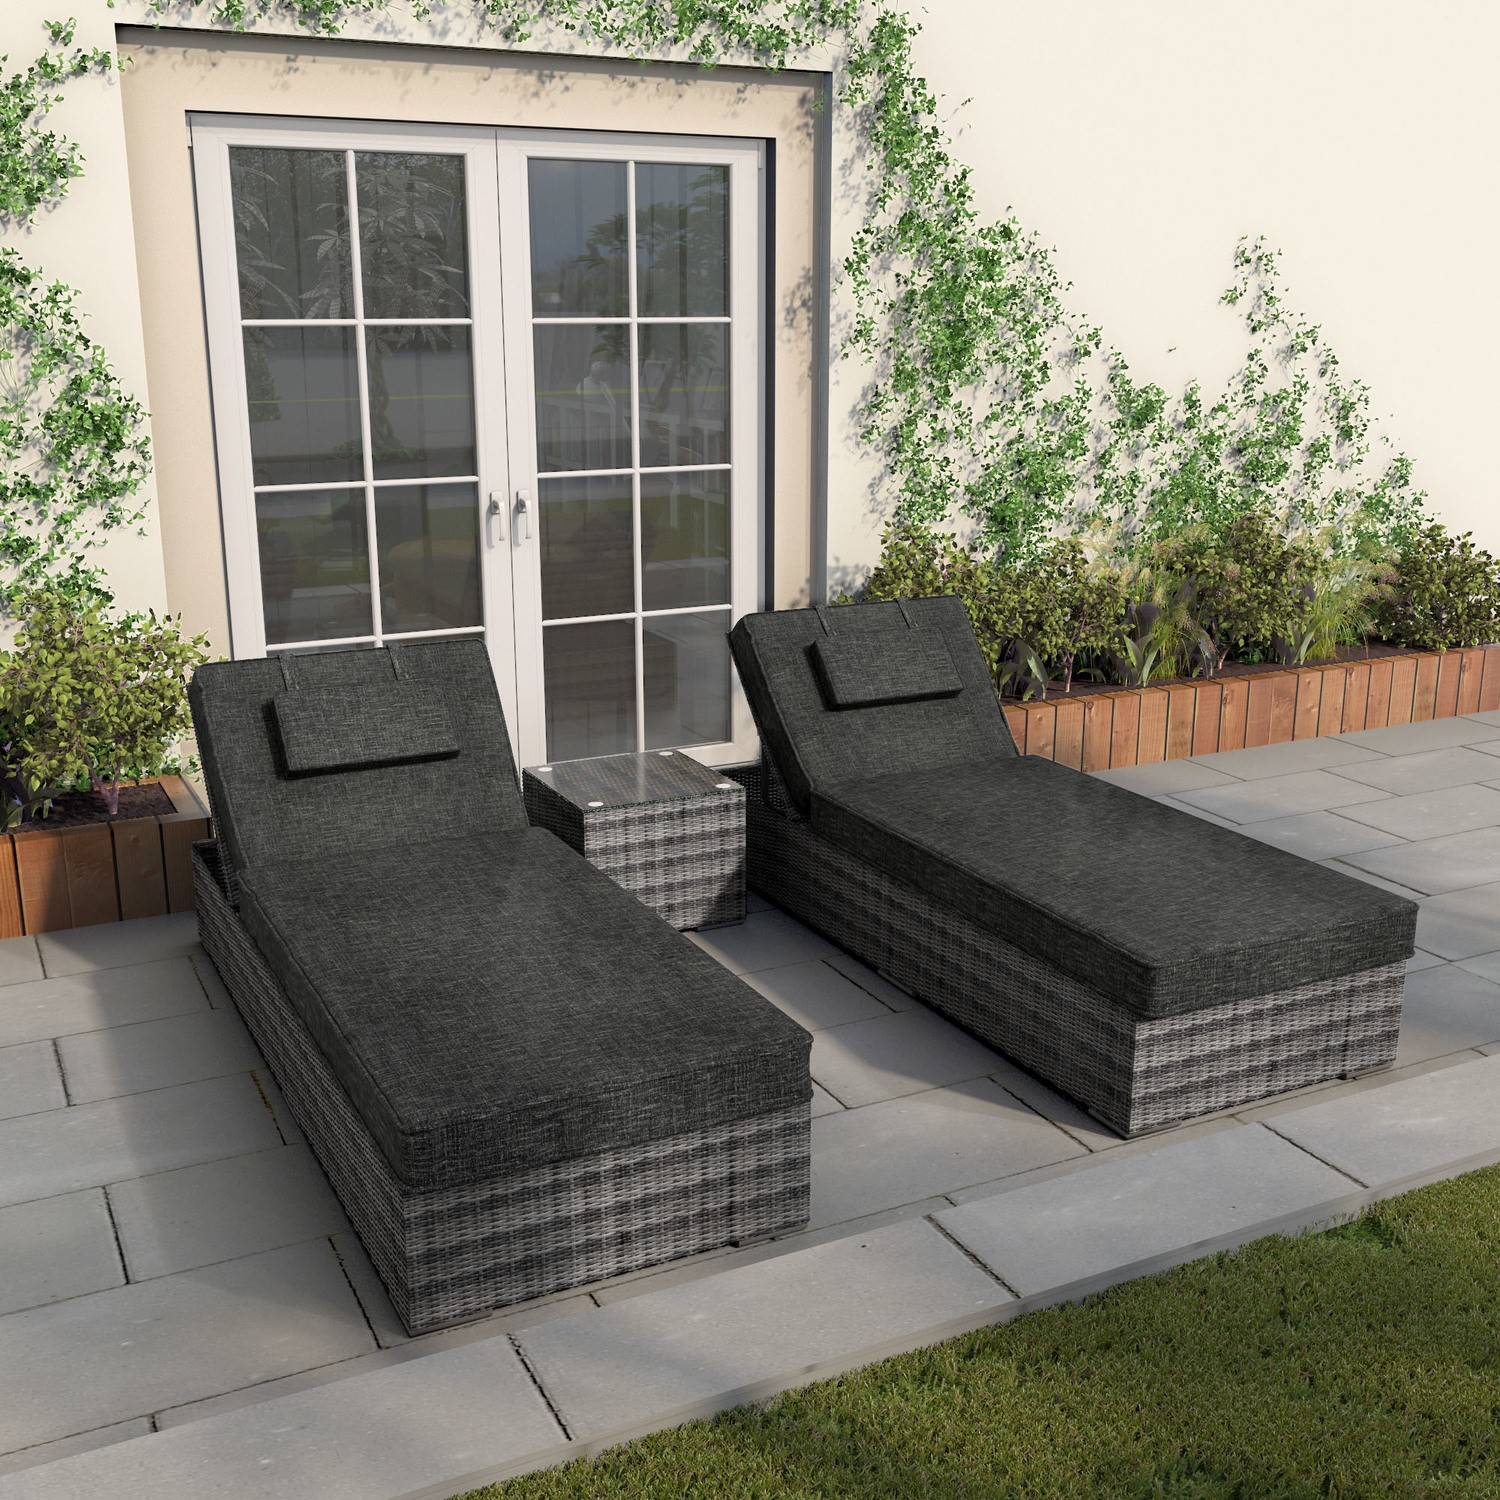 Rattan Sun Loungers with Side Table in Grey - Garden Furniture